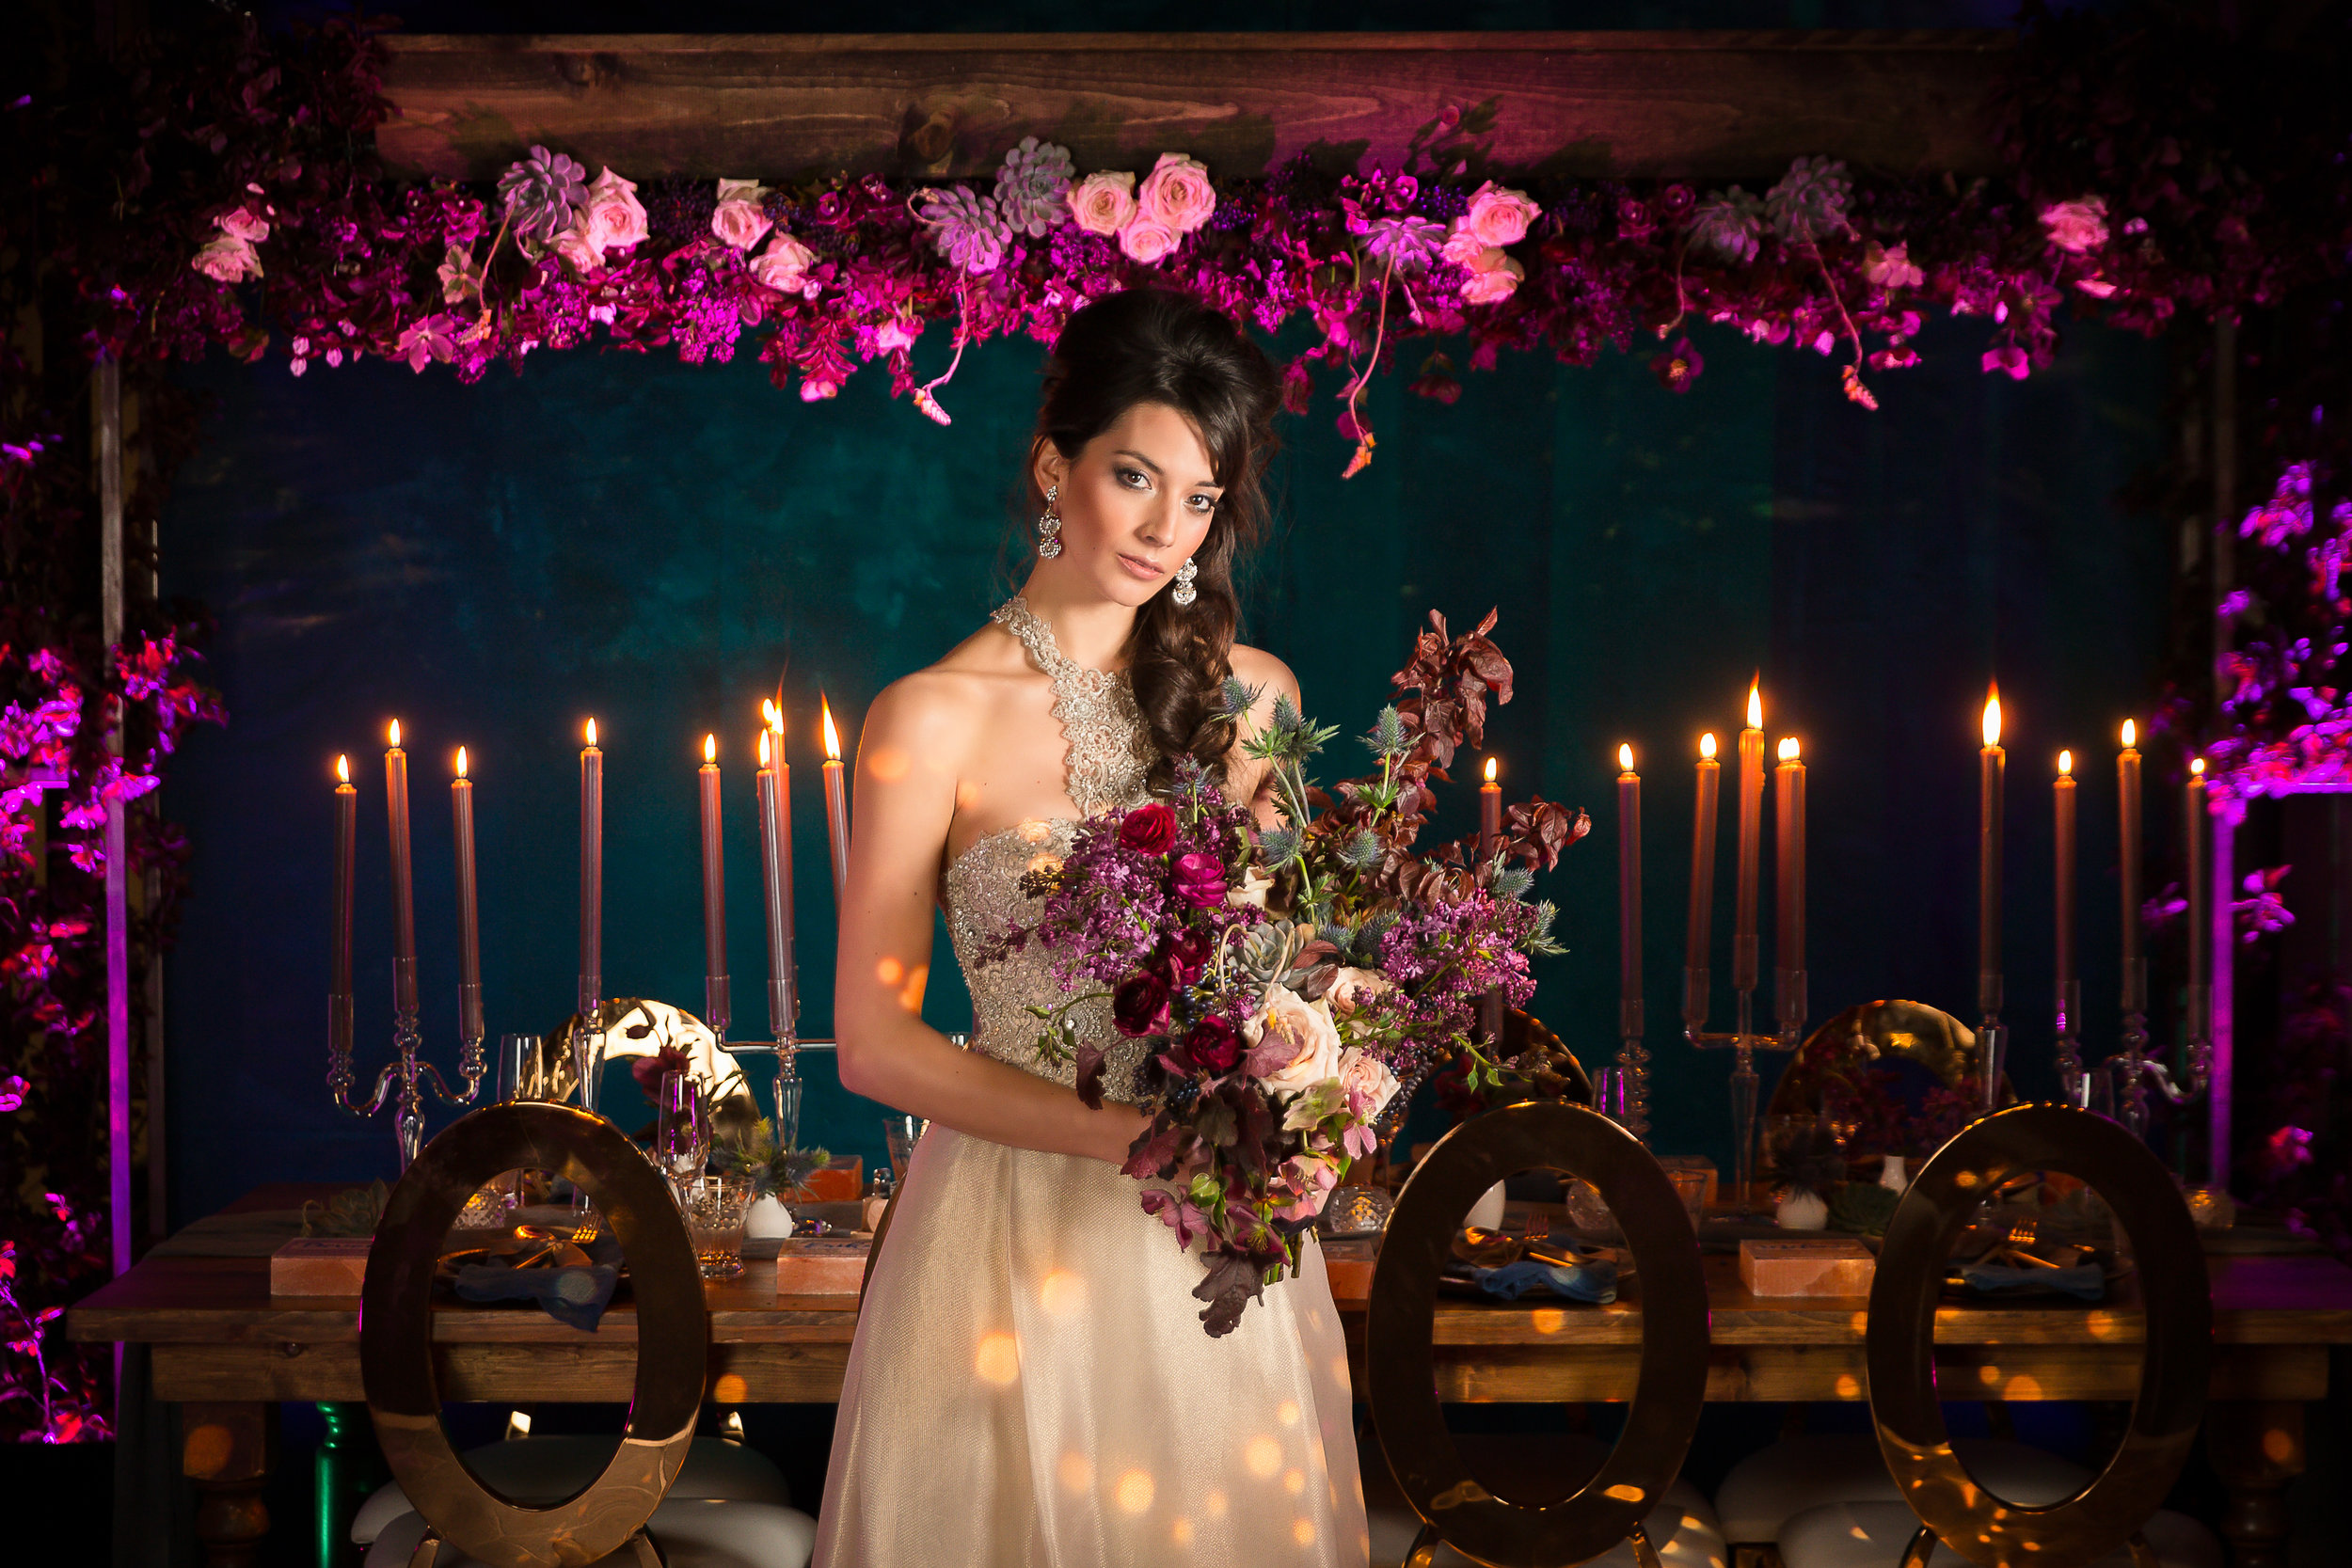 006-Chantal-Events-Space&Details.jpg